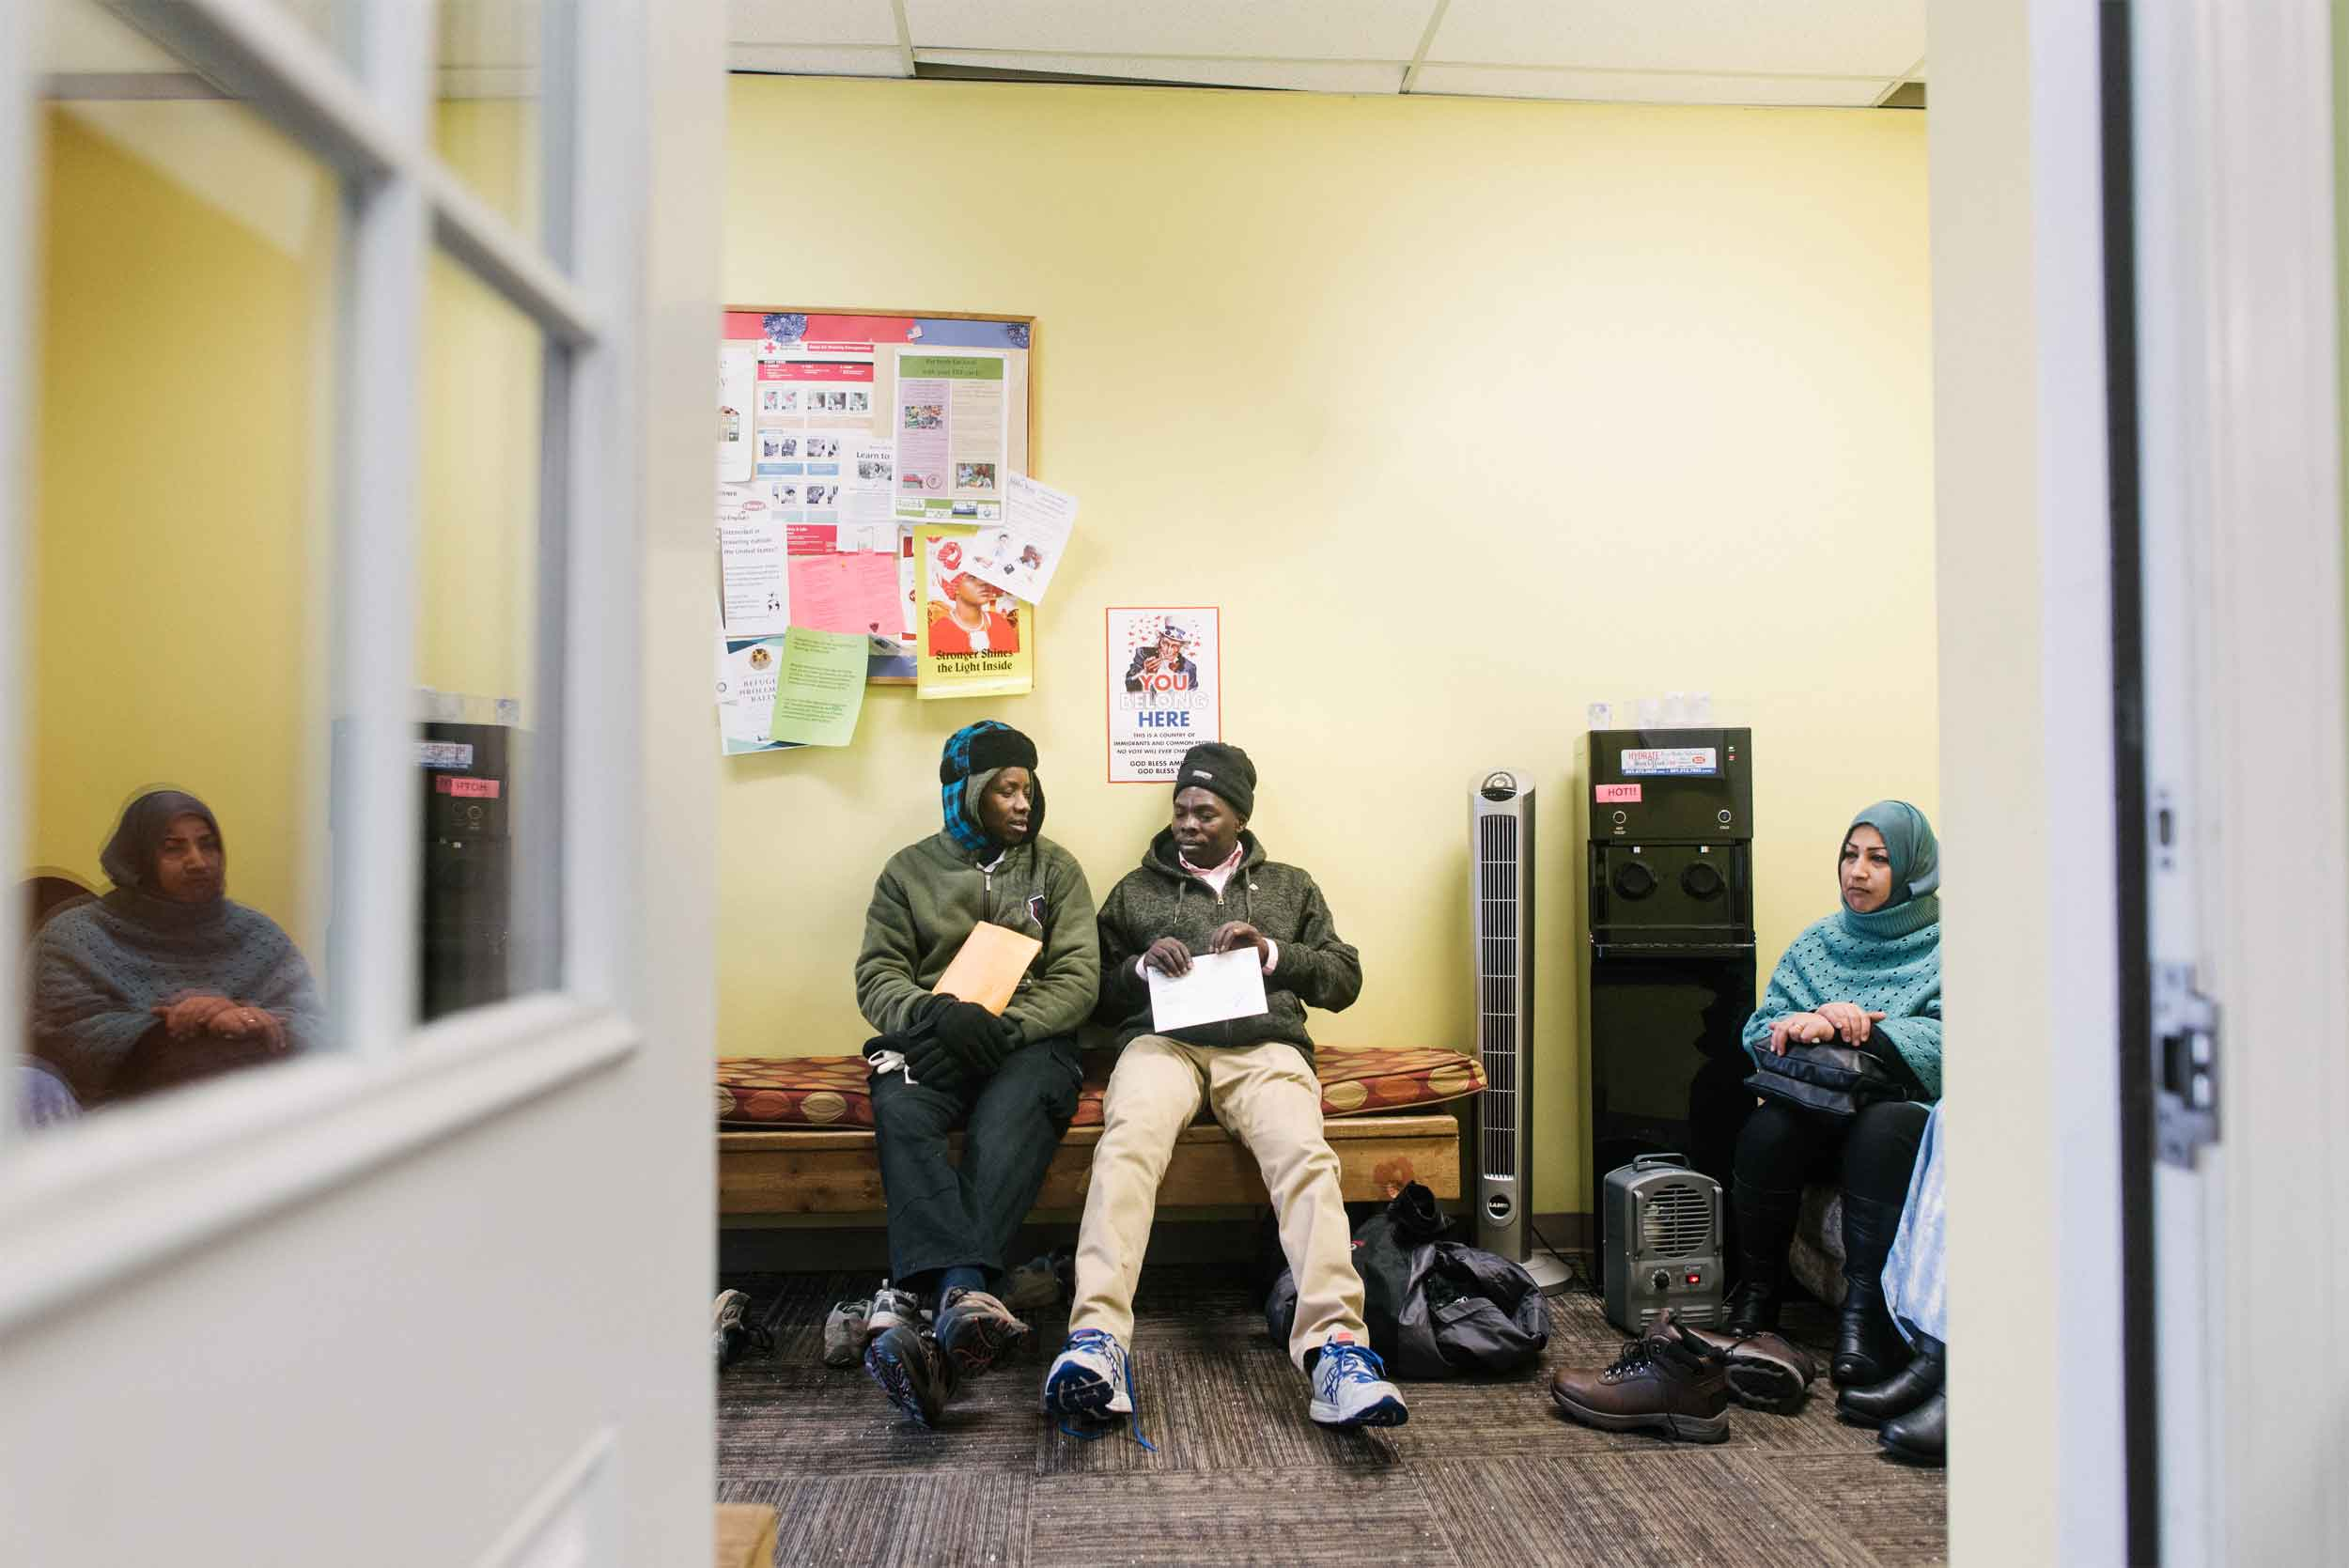 Clients participate in programs inside the IRC office in Boise